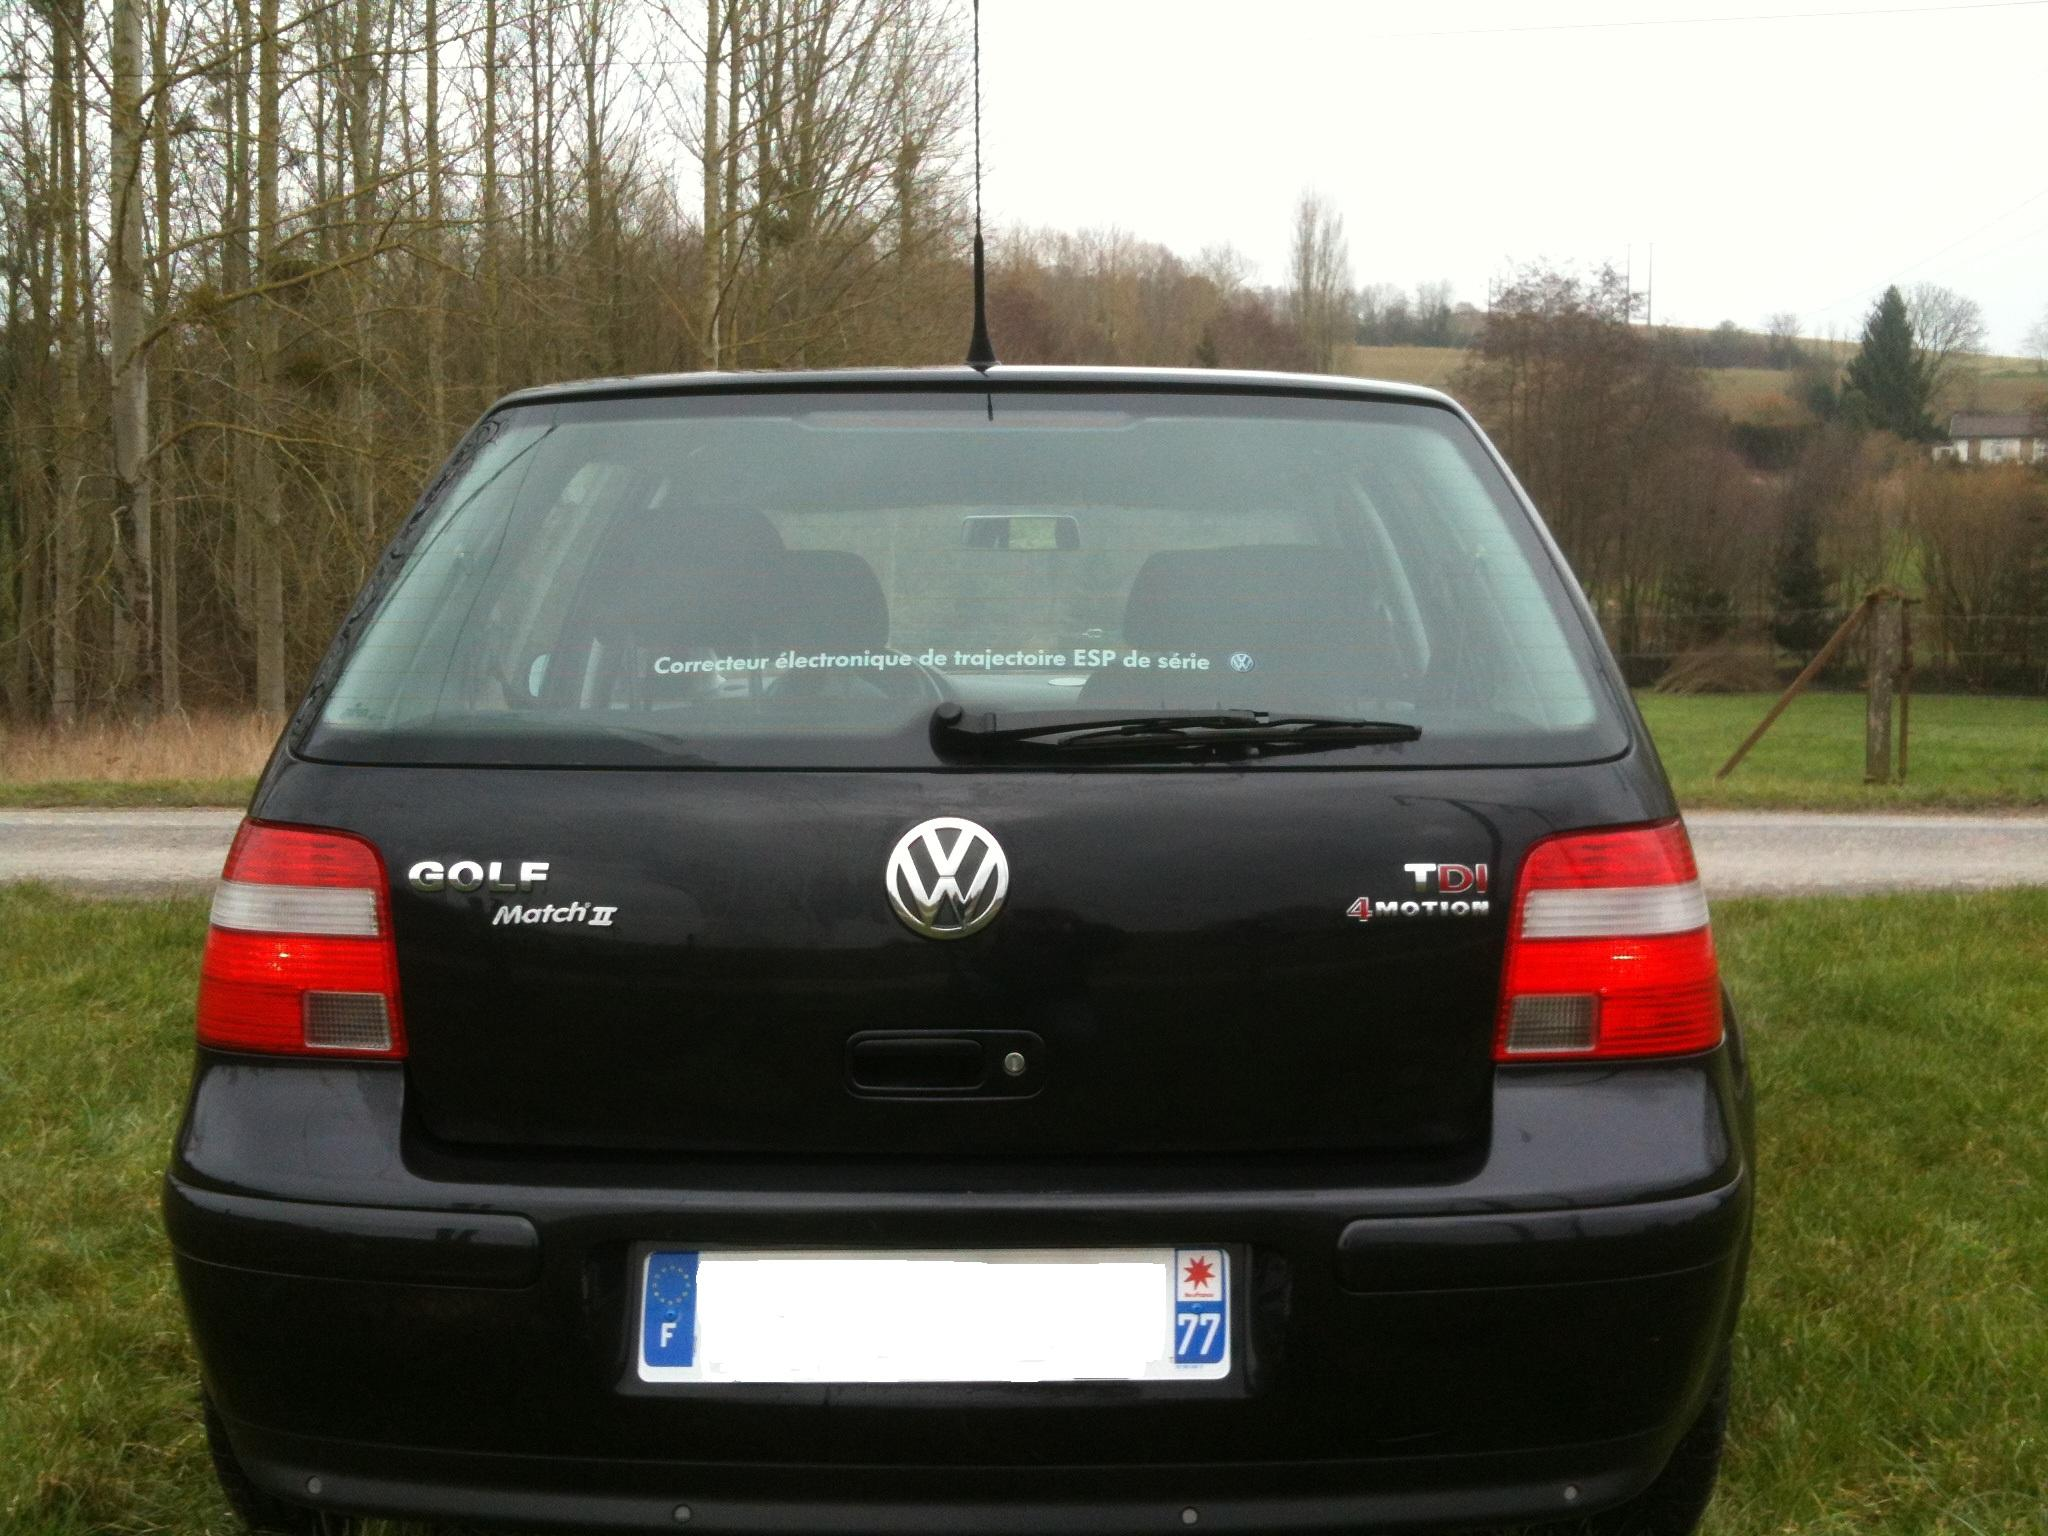 vw golf iv tdi 130 match ii 4motion 2003 photos p 1 garage des golf iv tdi 130 forum. Black Bedroom Furniture Sets. Home Design Ideas